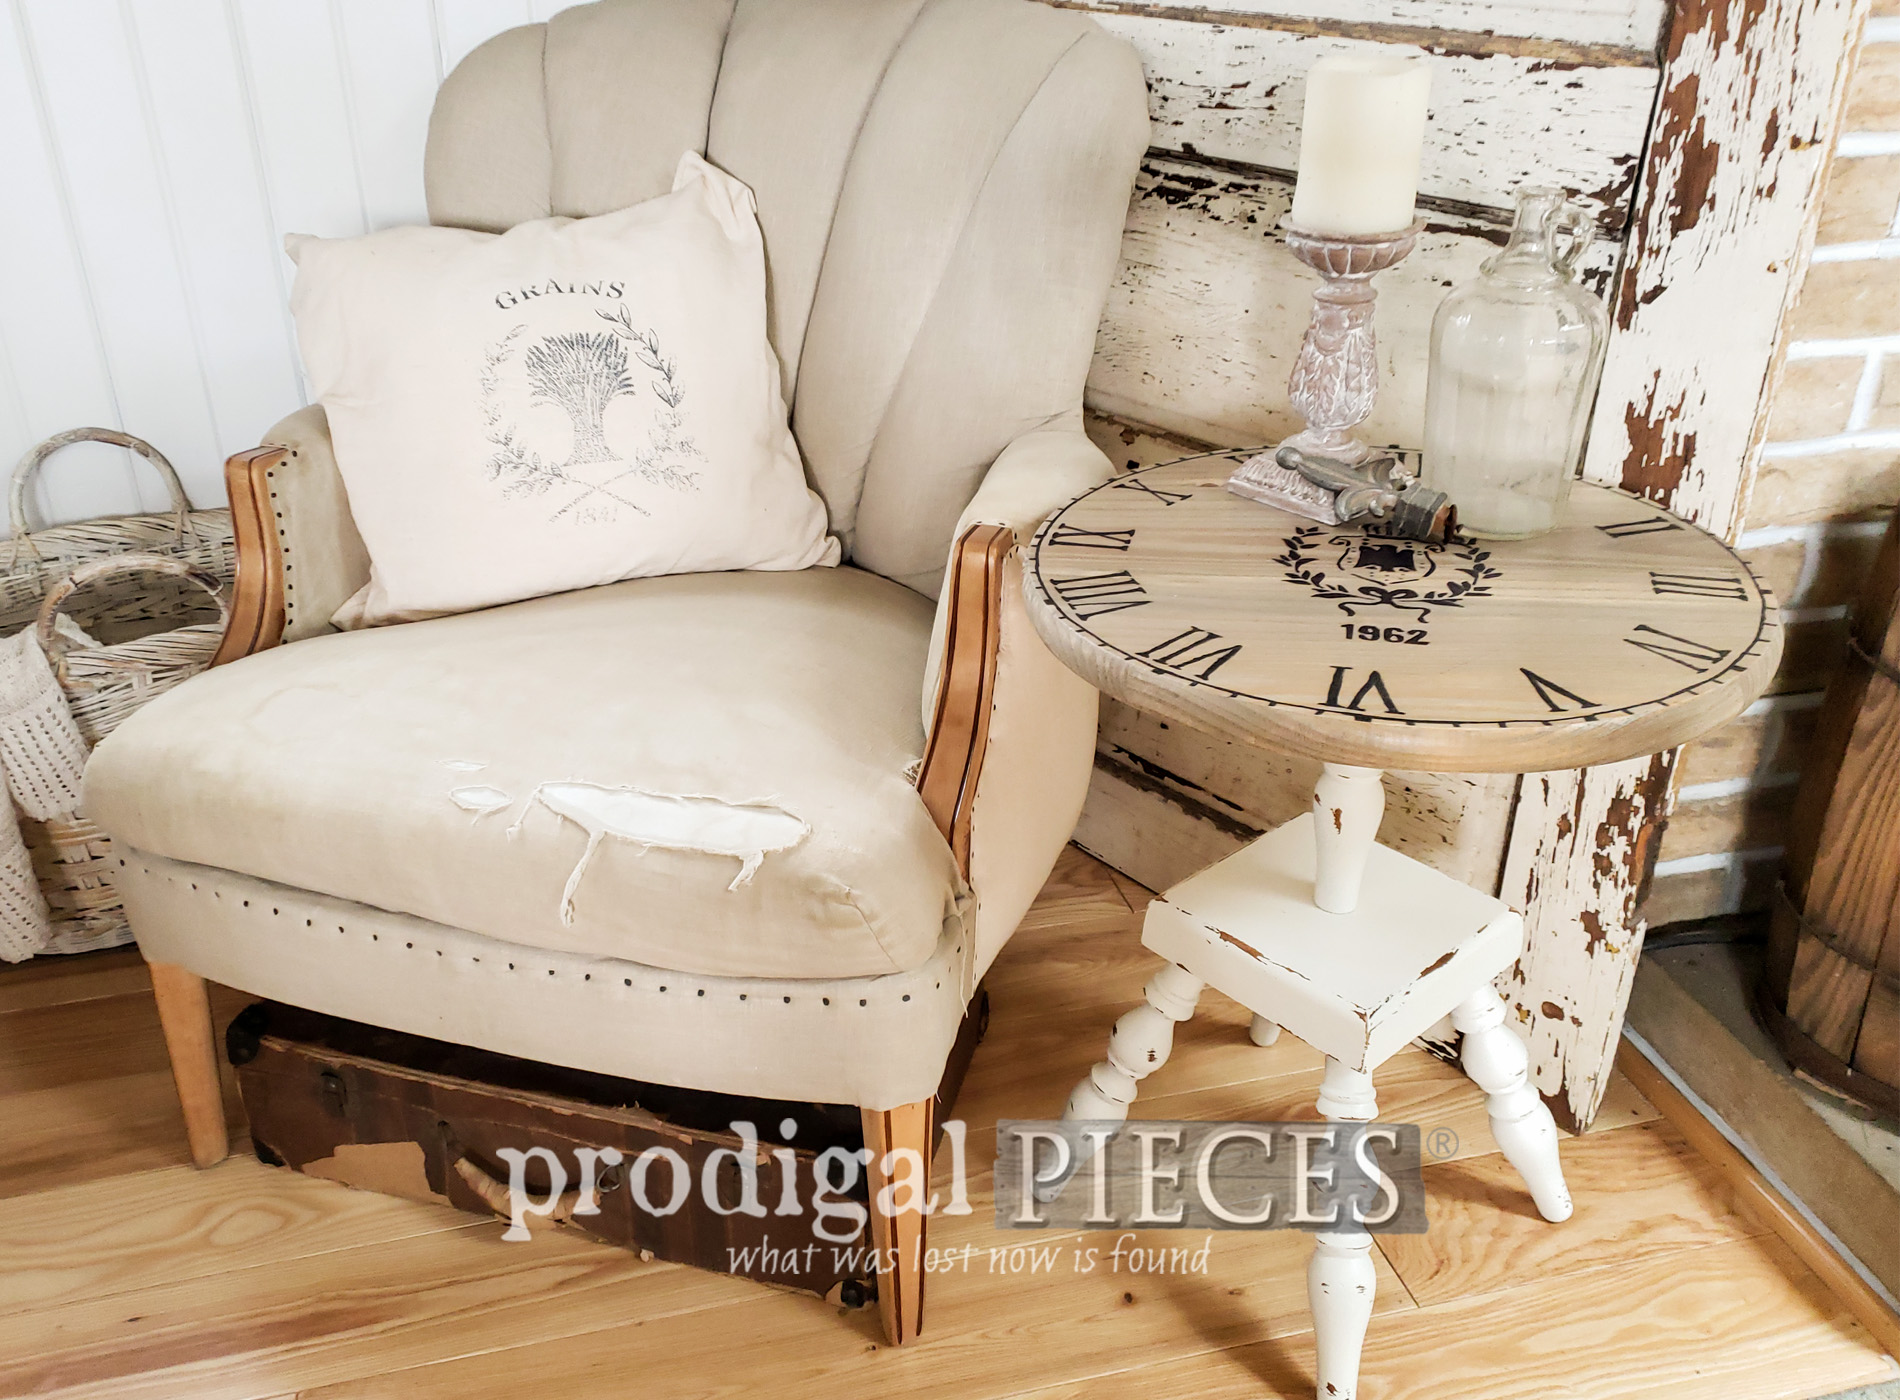 Featured Upcycled Clock Table from a vintage ash tray stand by Larissa of Prodigal Pieces | prodigalpieces.com #prodigalpieces #furniture #diy #farmhouse #home #homedecor #upcycled